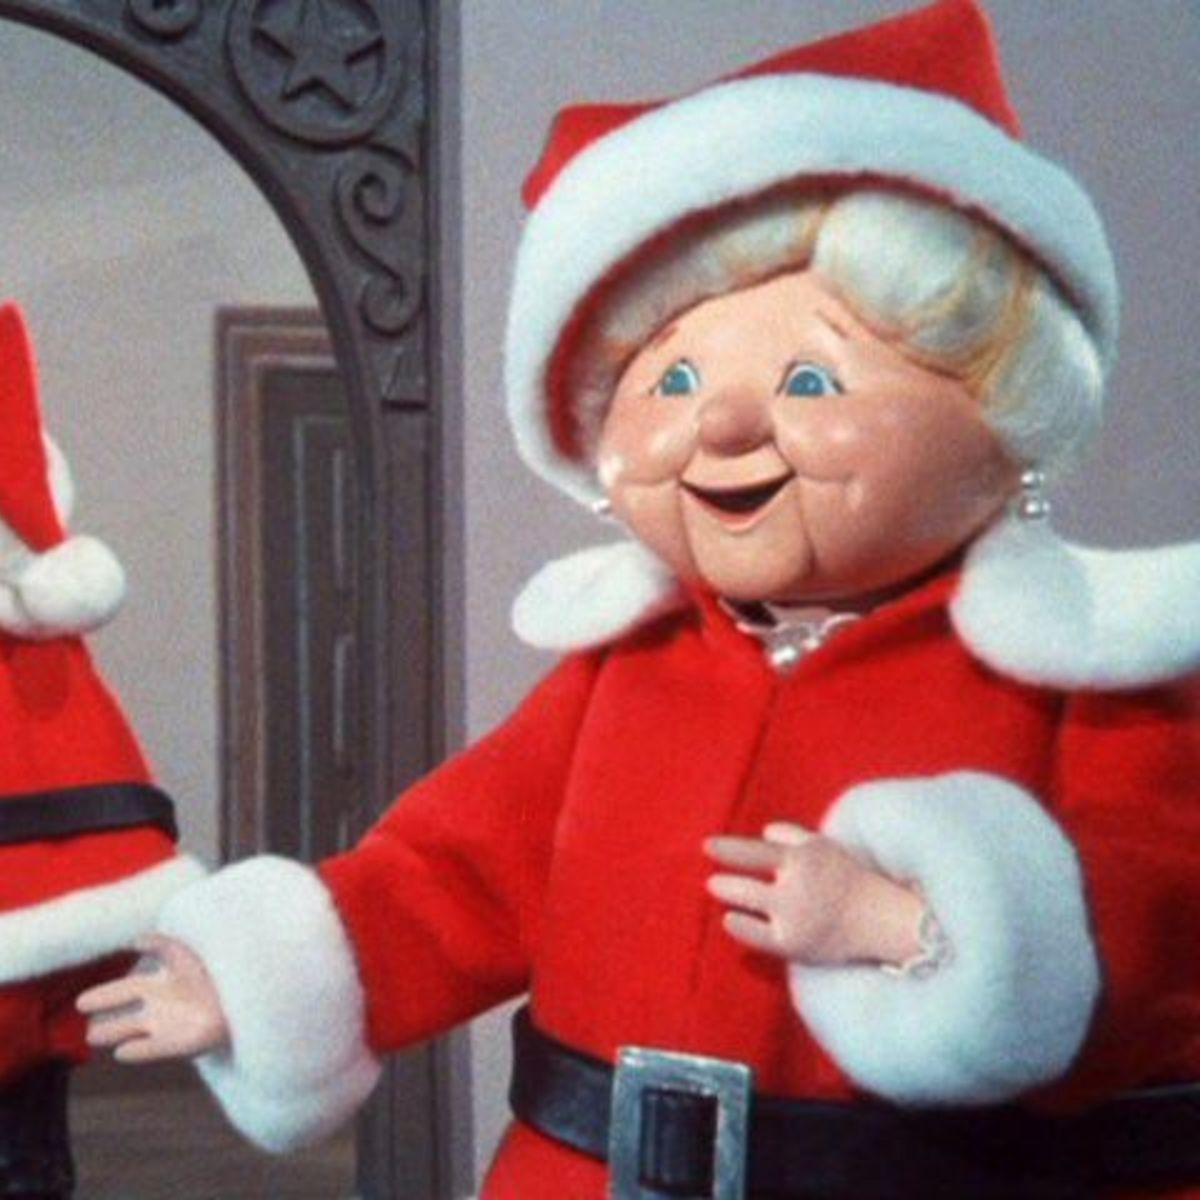 This Christmas, Mrs. Claus deserves better | SYFY WIRE